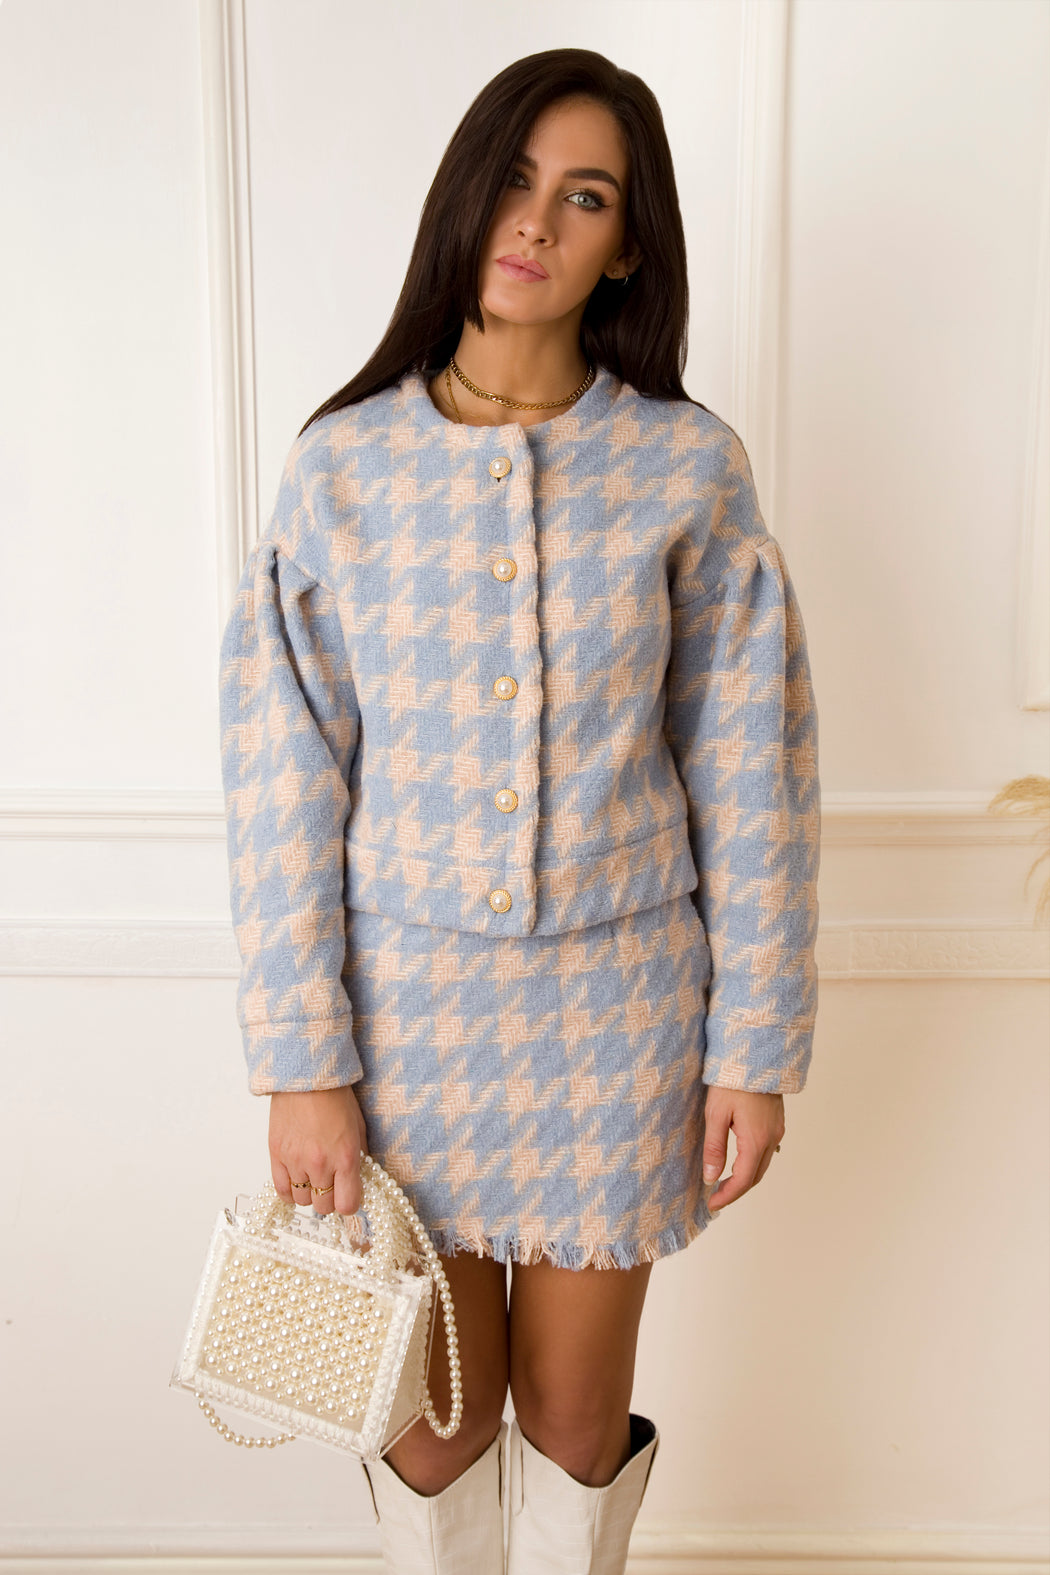 Cher Houndstooth Jacket - Lavand Stories